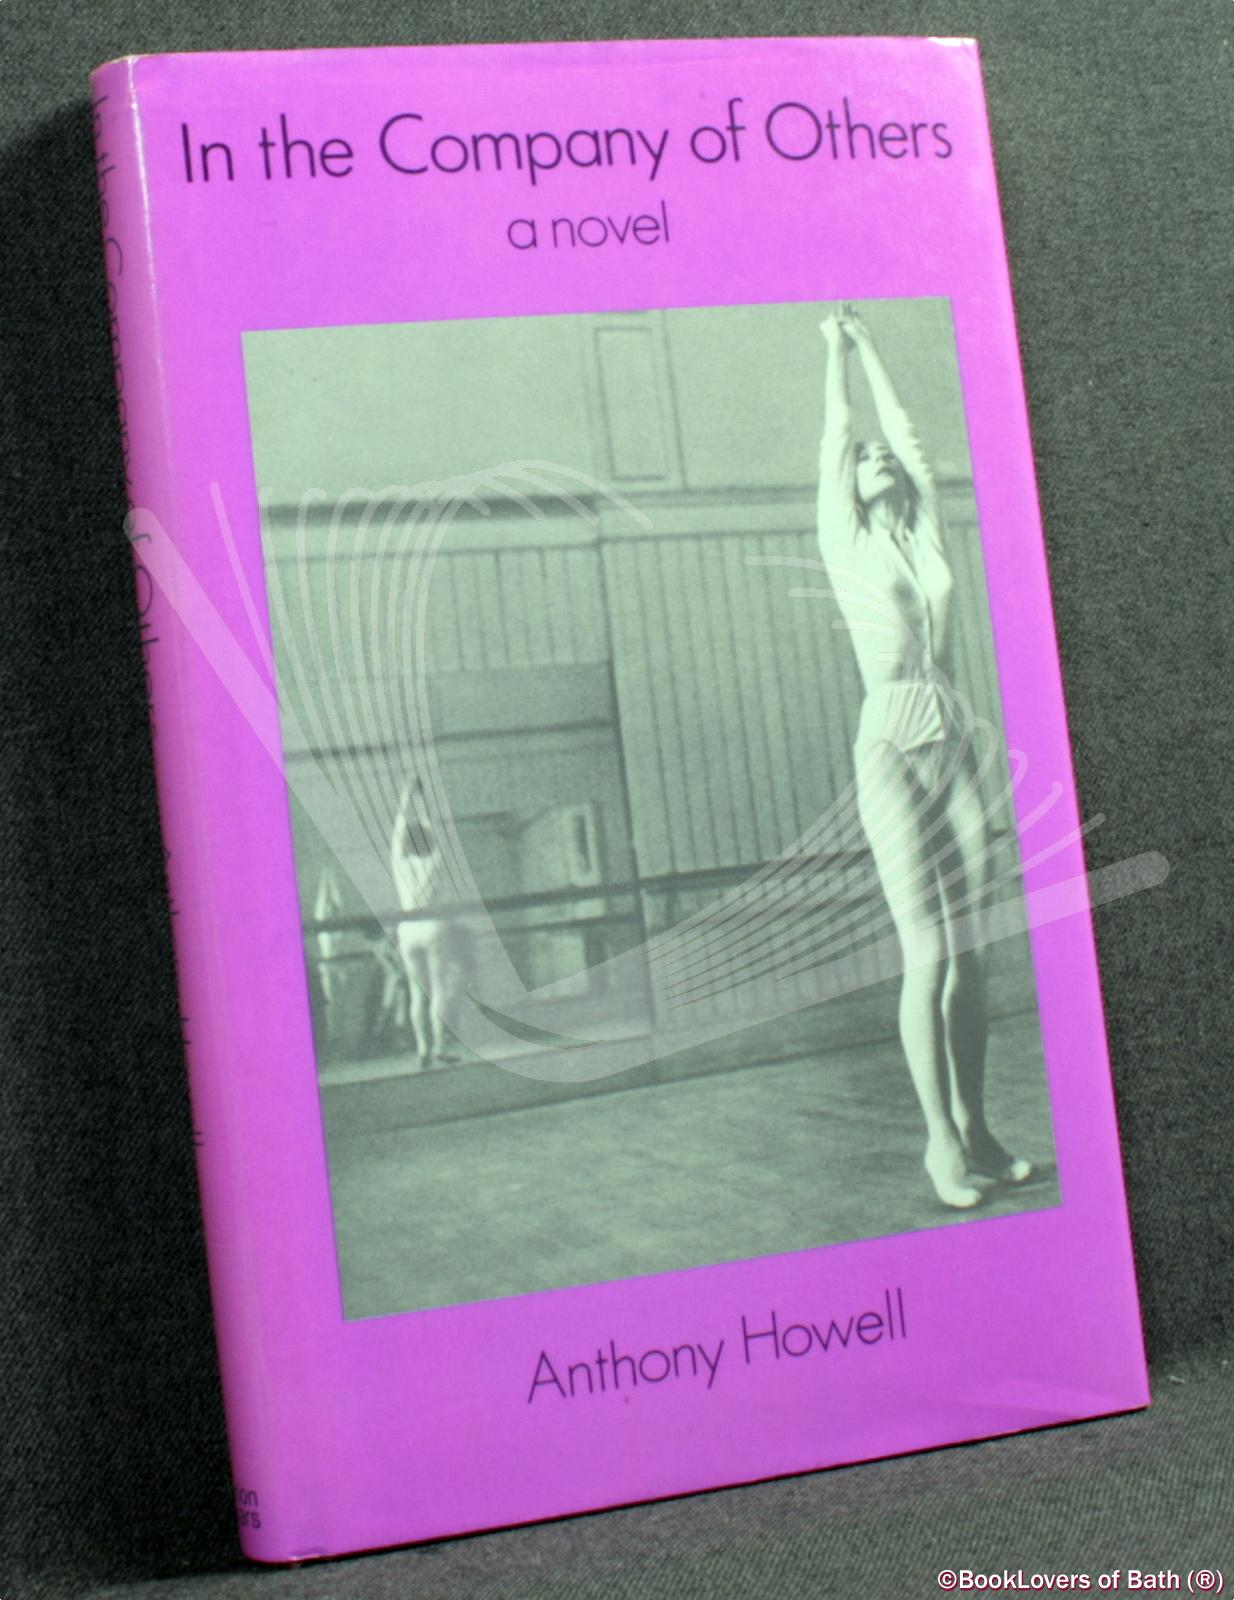 In the Company of Others - Anthony Howell